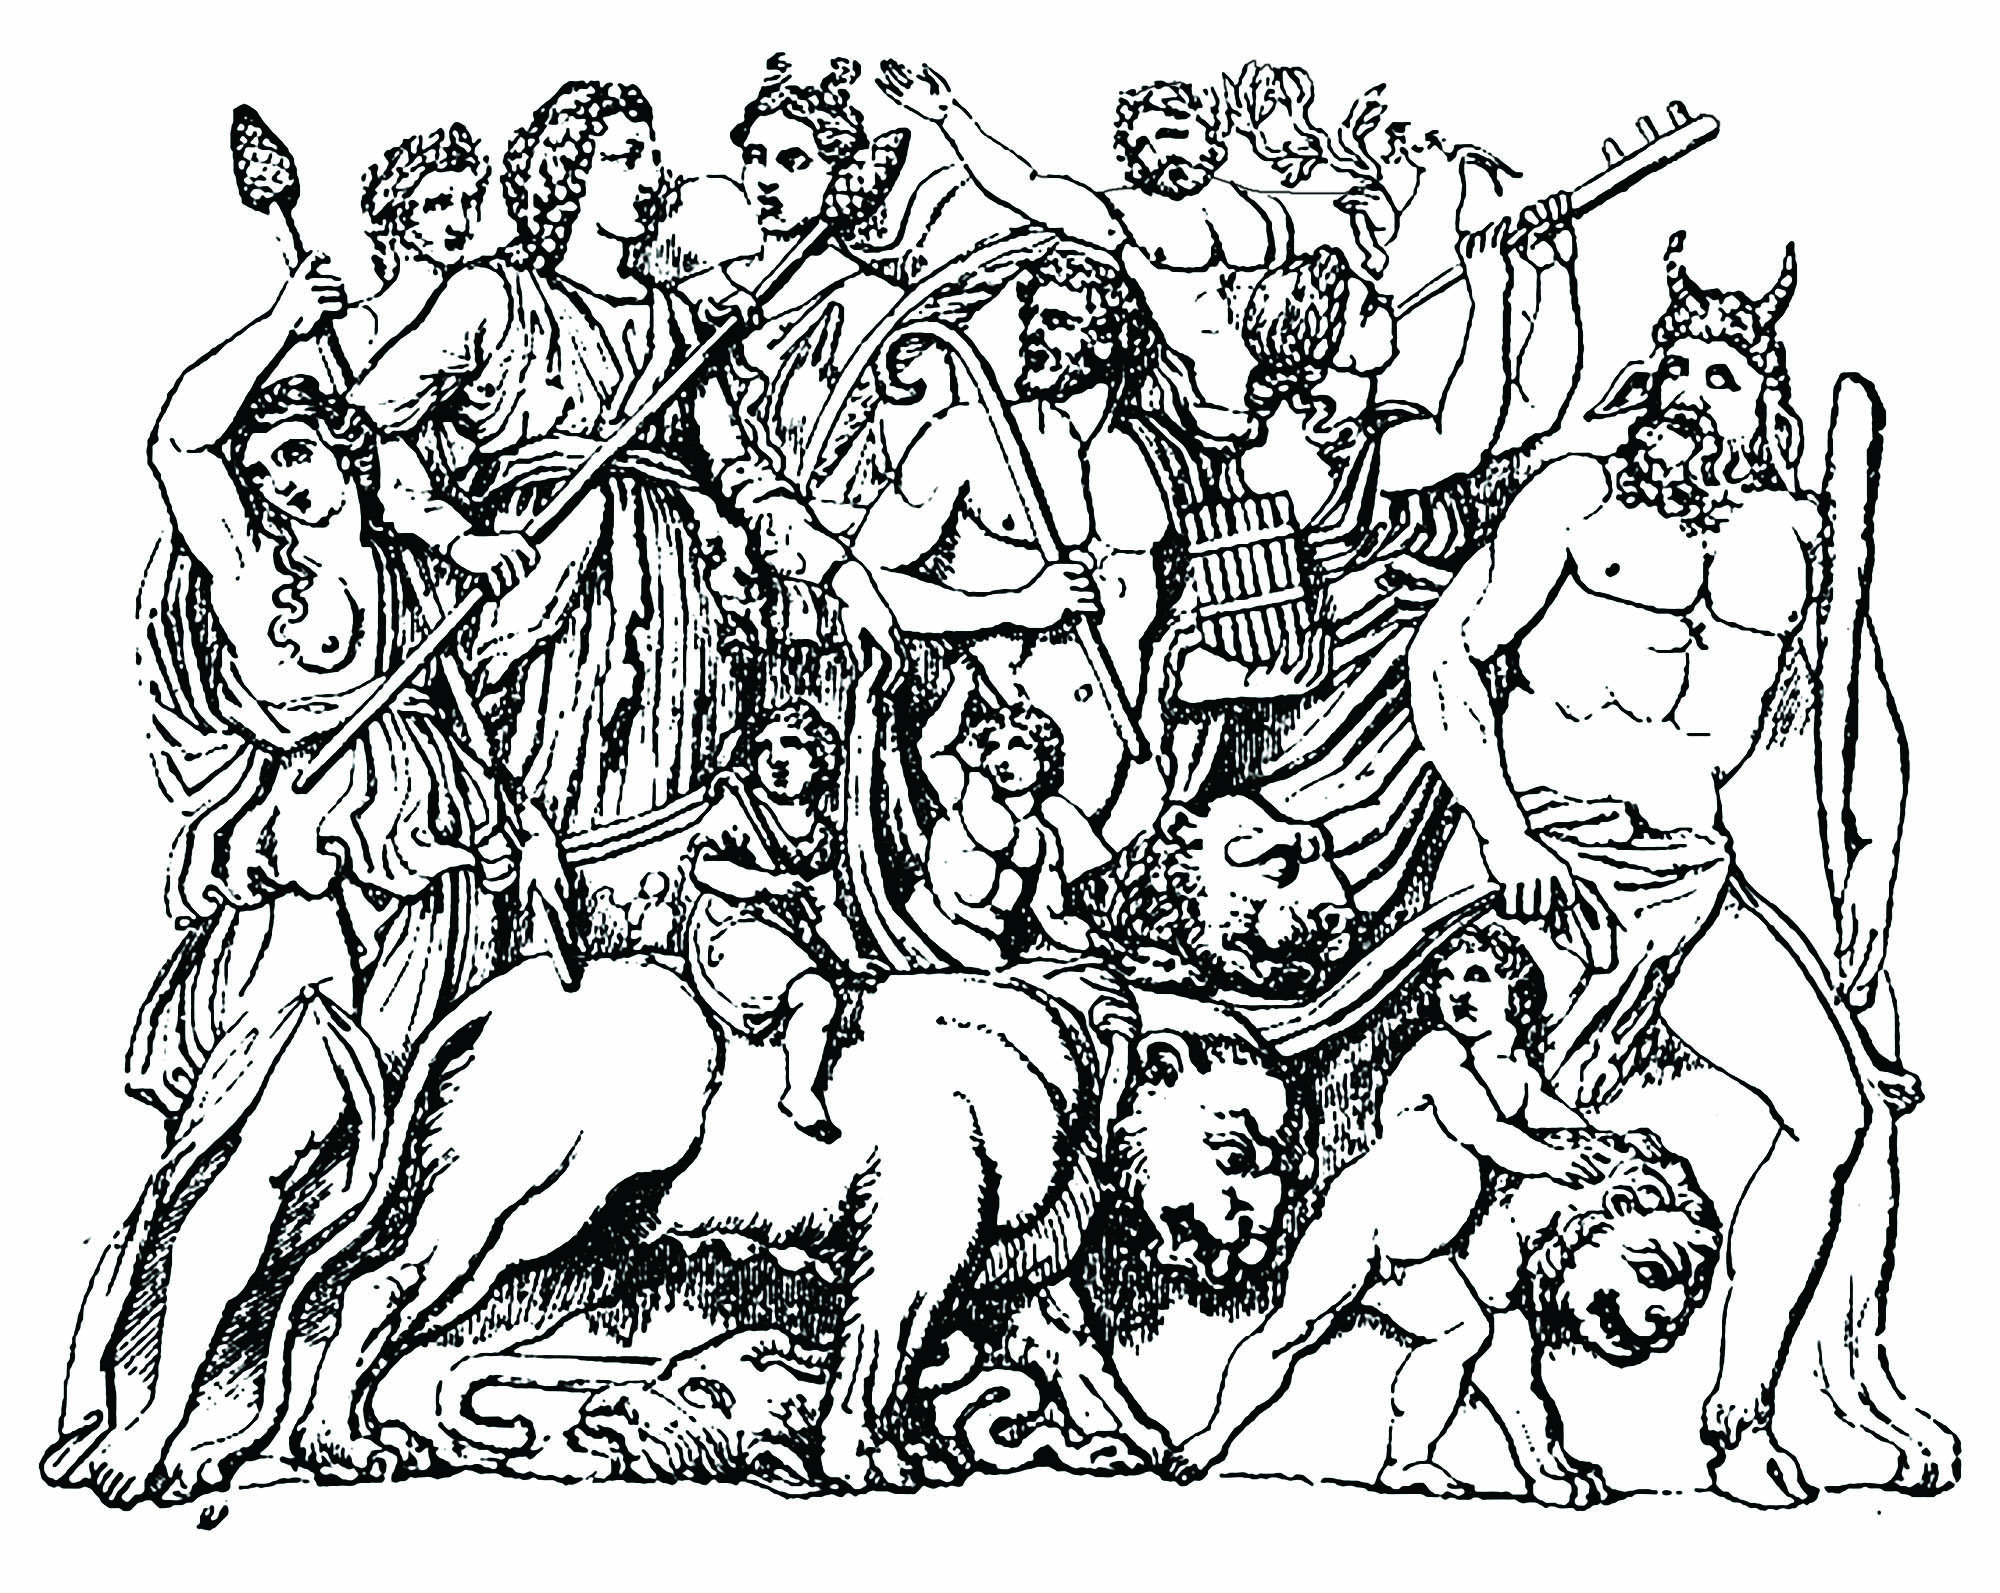 Dionysus sur le dos d'un tigre. (Sir William Smith, A Smaller Classical Dictionary of Biography, Mythology, and Geography (1898))